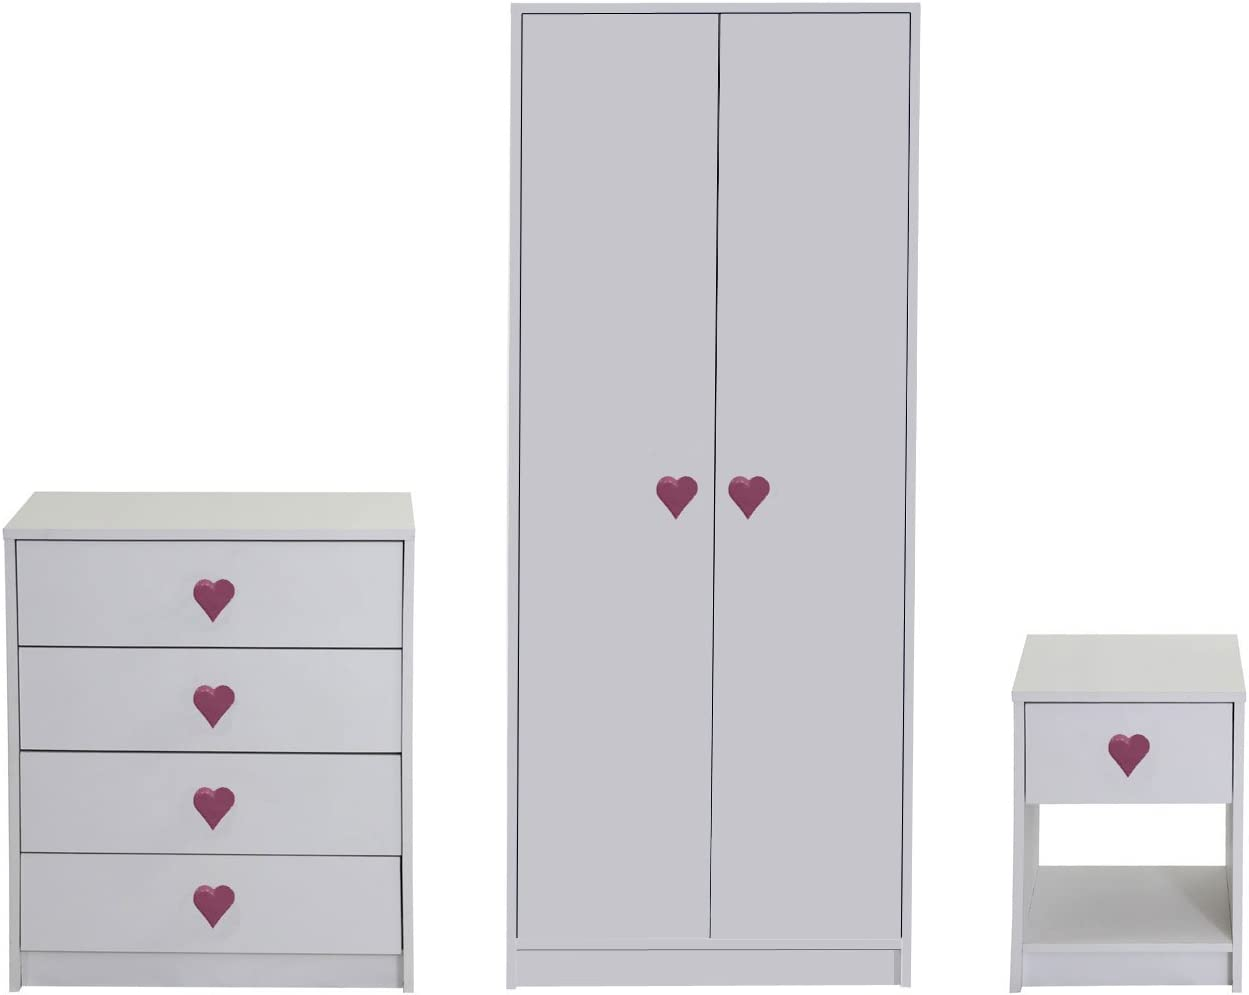 Devoted2Home Hearts Childrens Bedroom Furniture 3 Piece Set-White-Includes  Wardrobe, Chest of Drawers and Bedside Cabinet, Wood, 49.8x66.8x139 cm